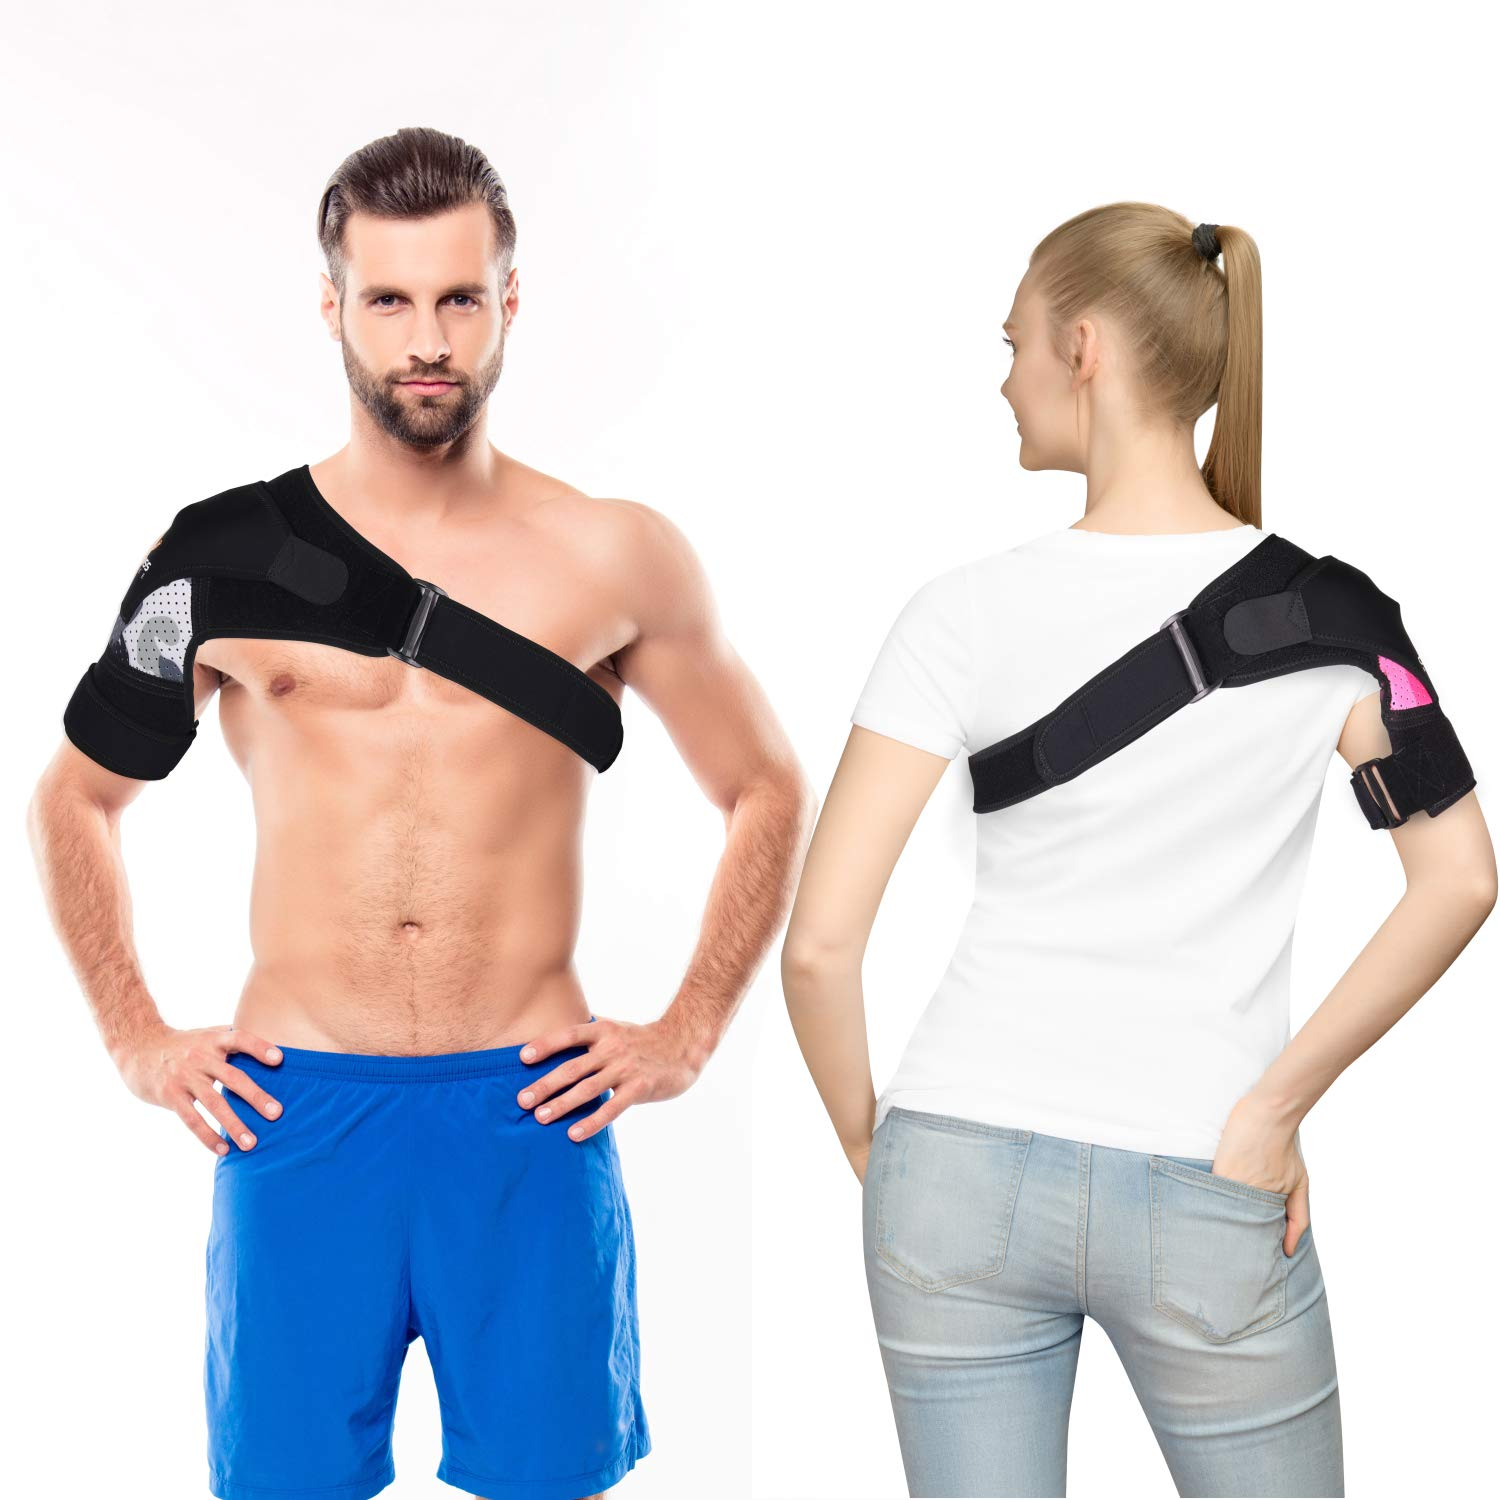 Shoulder Brace with Compression Pad for Men,Women,Right,Left,Adjustable Breathable Neoprene Shoulder Support for Rotator Cuff, Dislocated AC Joint,Bursitis (Pink S-M) by Cleviss